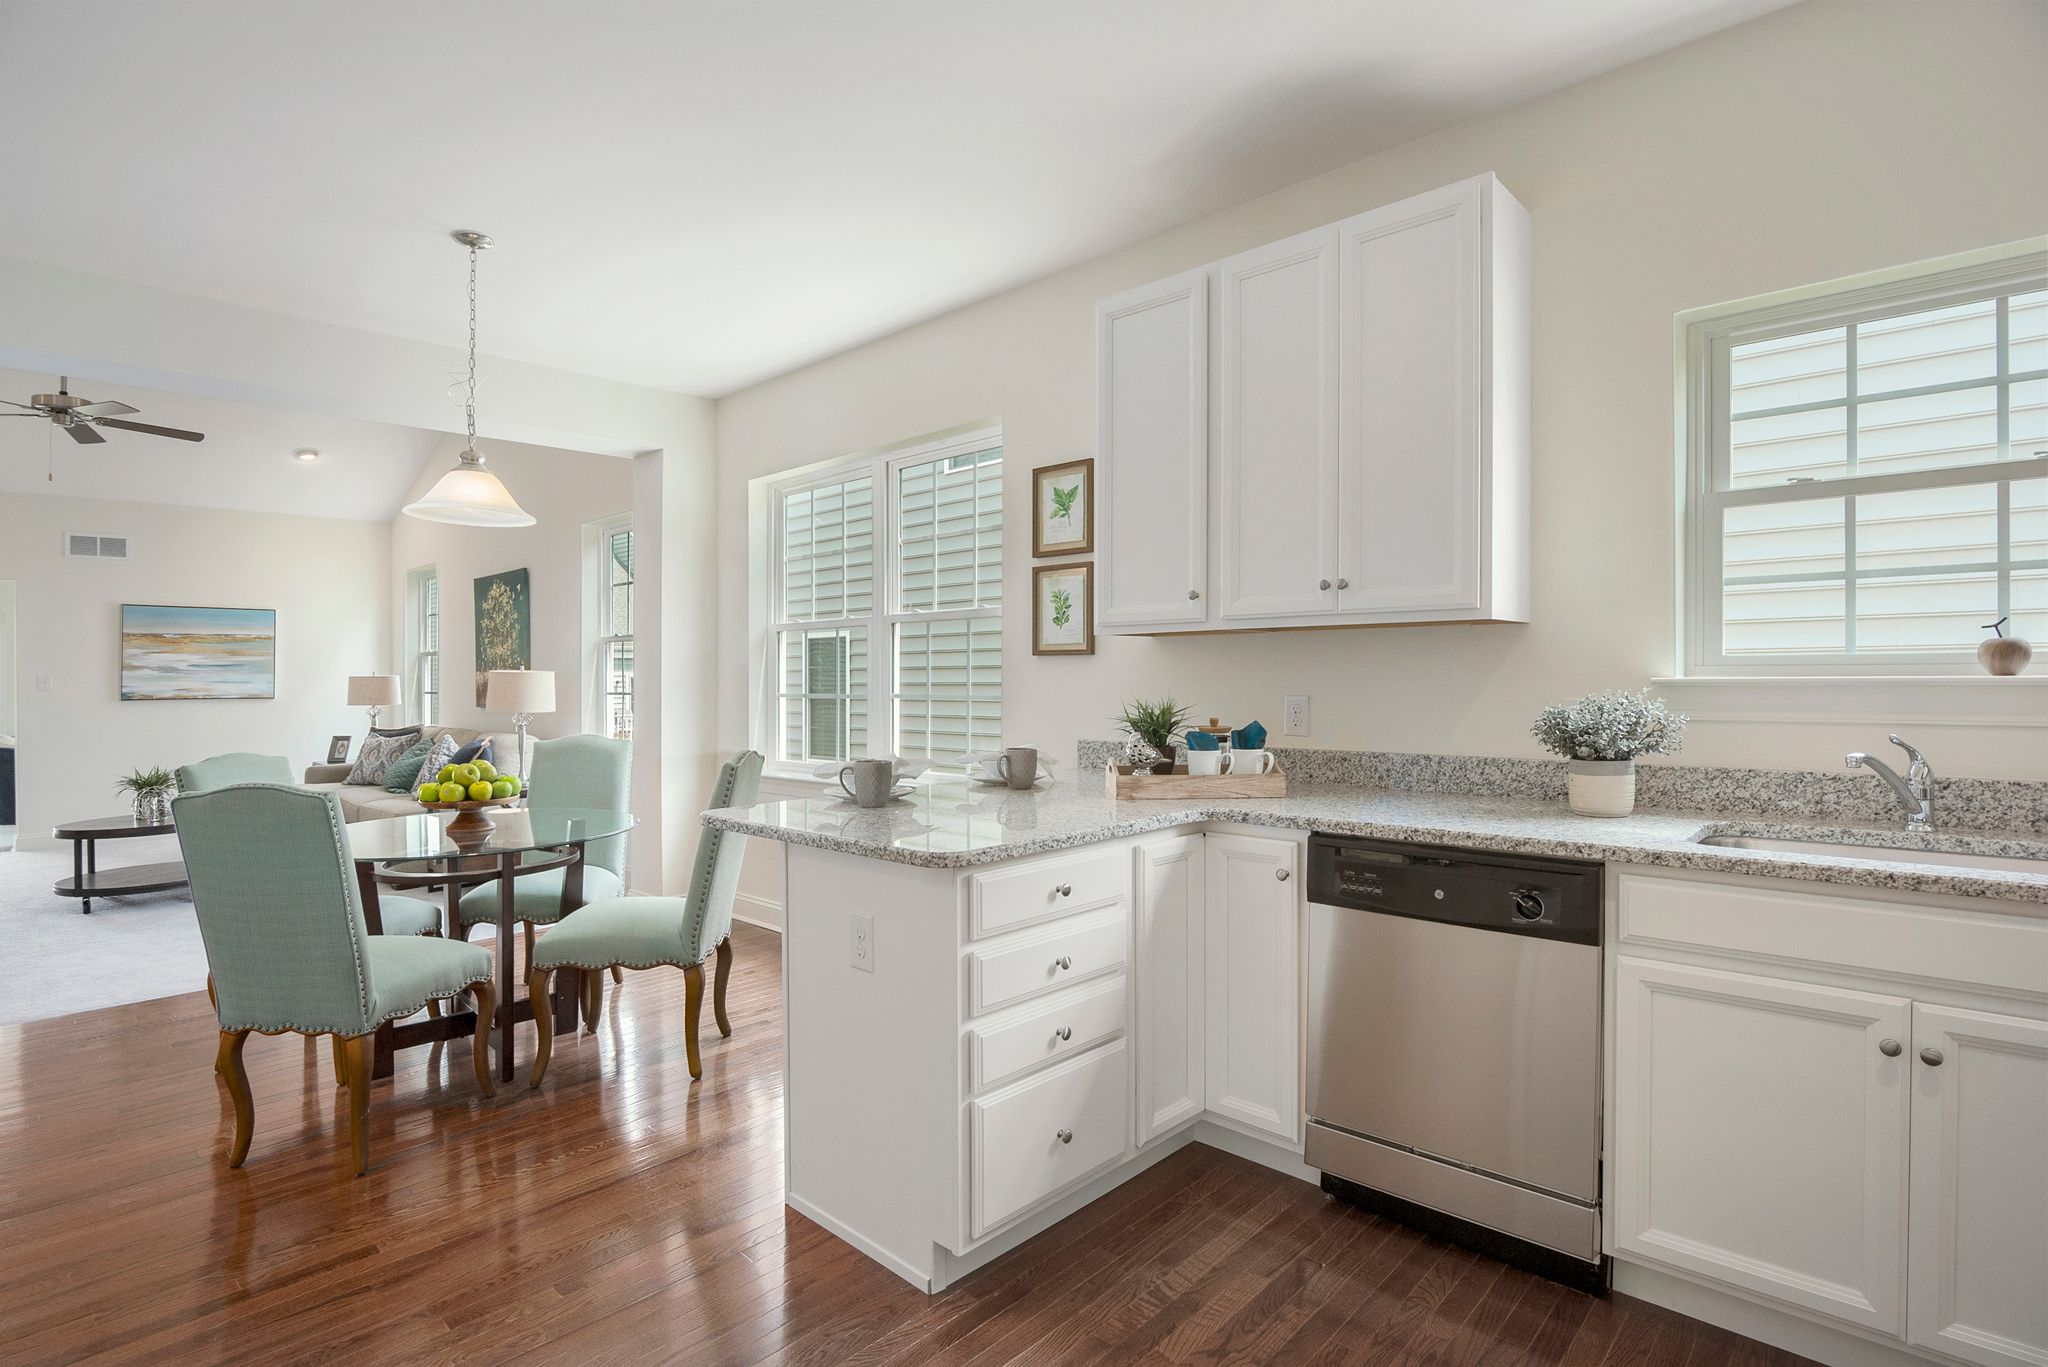 Kitchen featured in The Aston By Benchmark Builders in Dover, DE